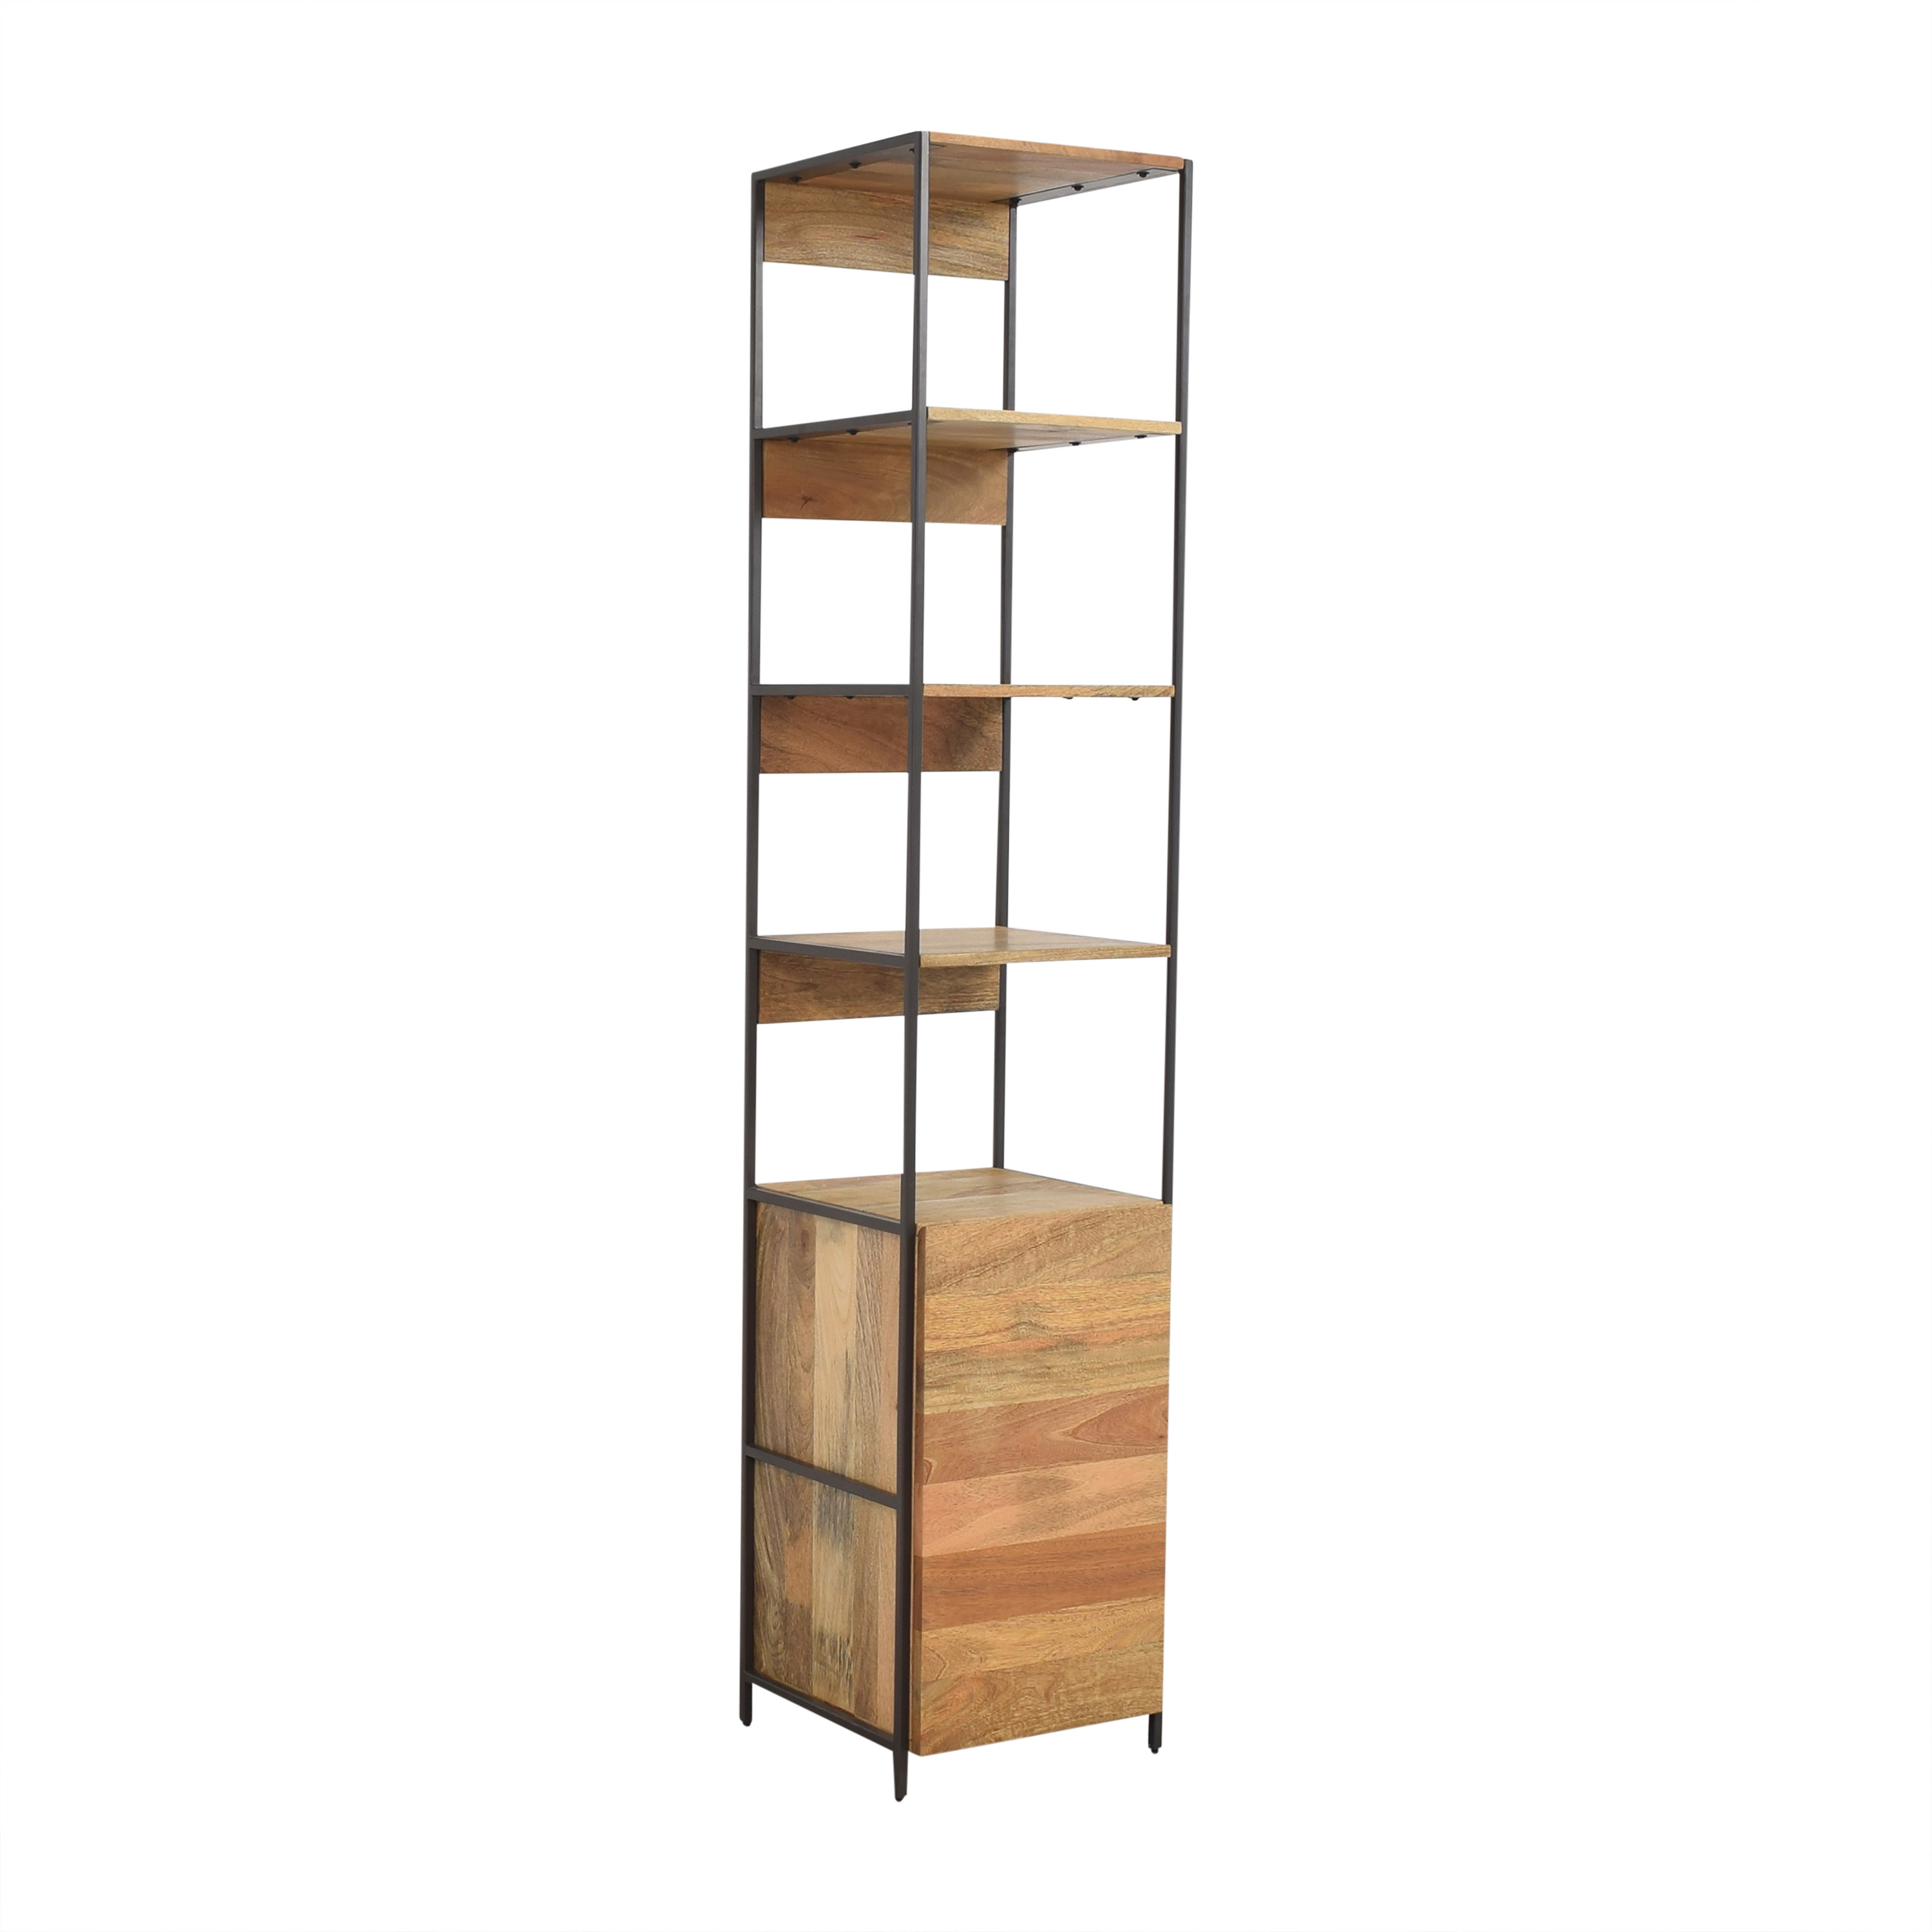 West Elm West Elm Industrial Modular Open and Closed Storage pa